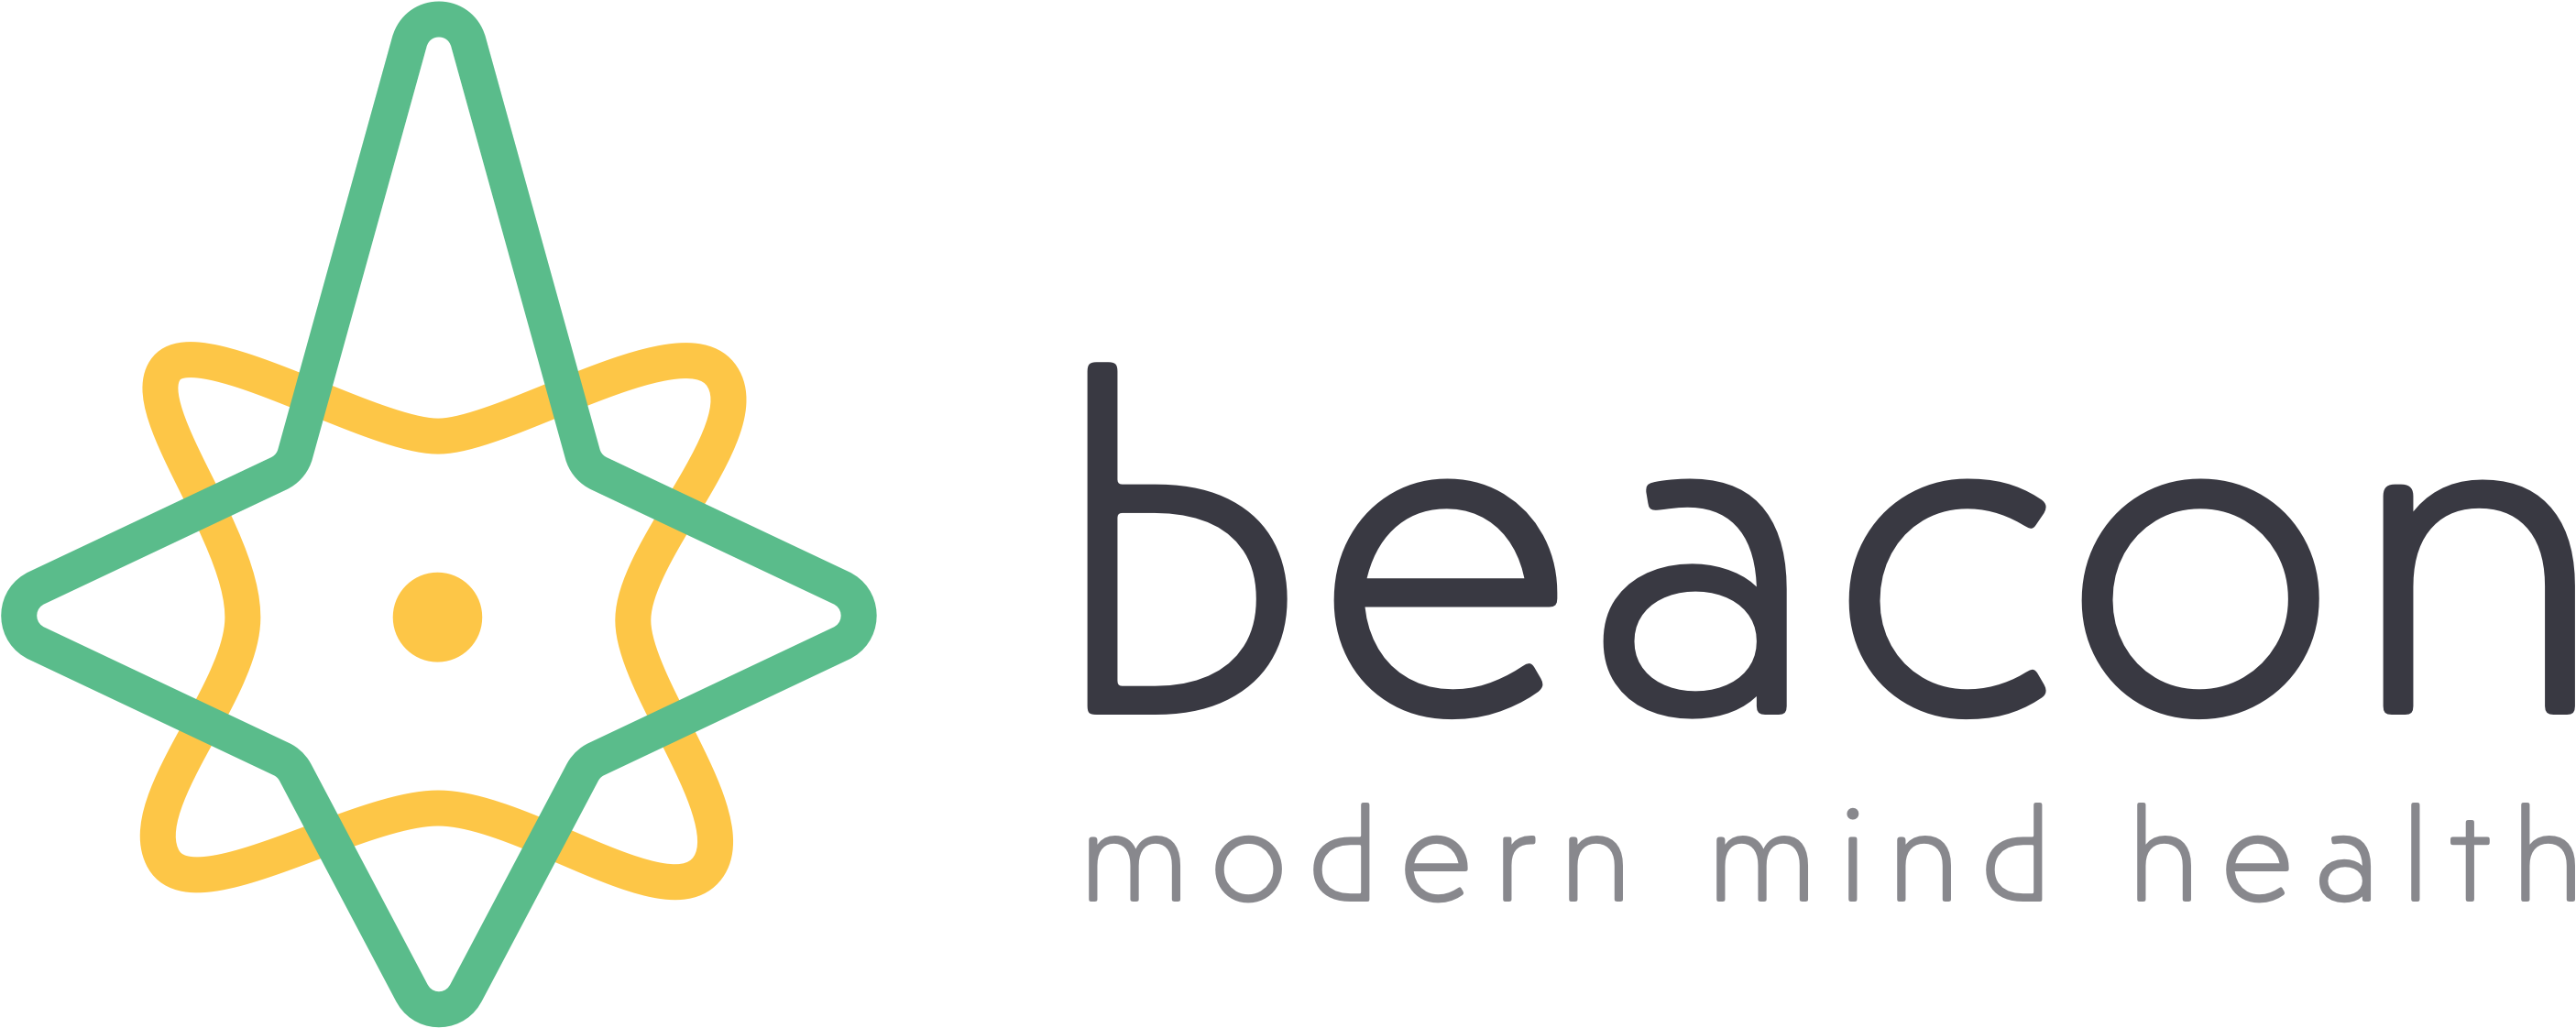 Beacon Modern Mind Health